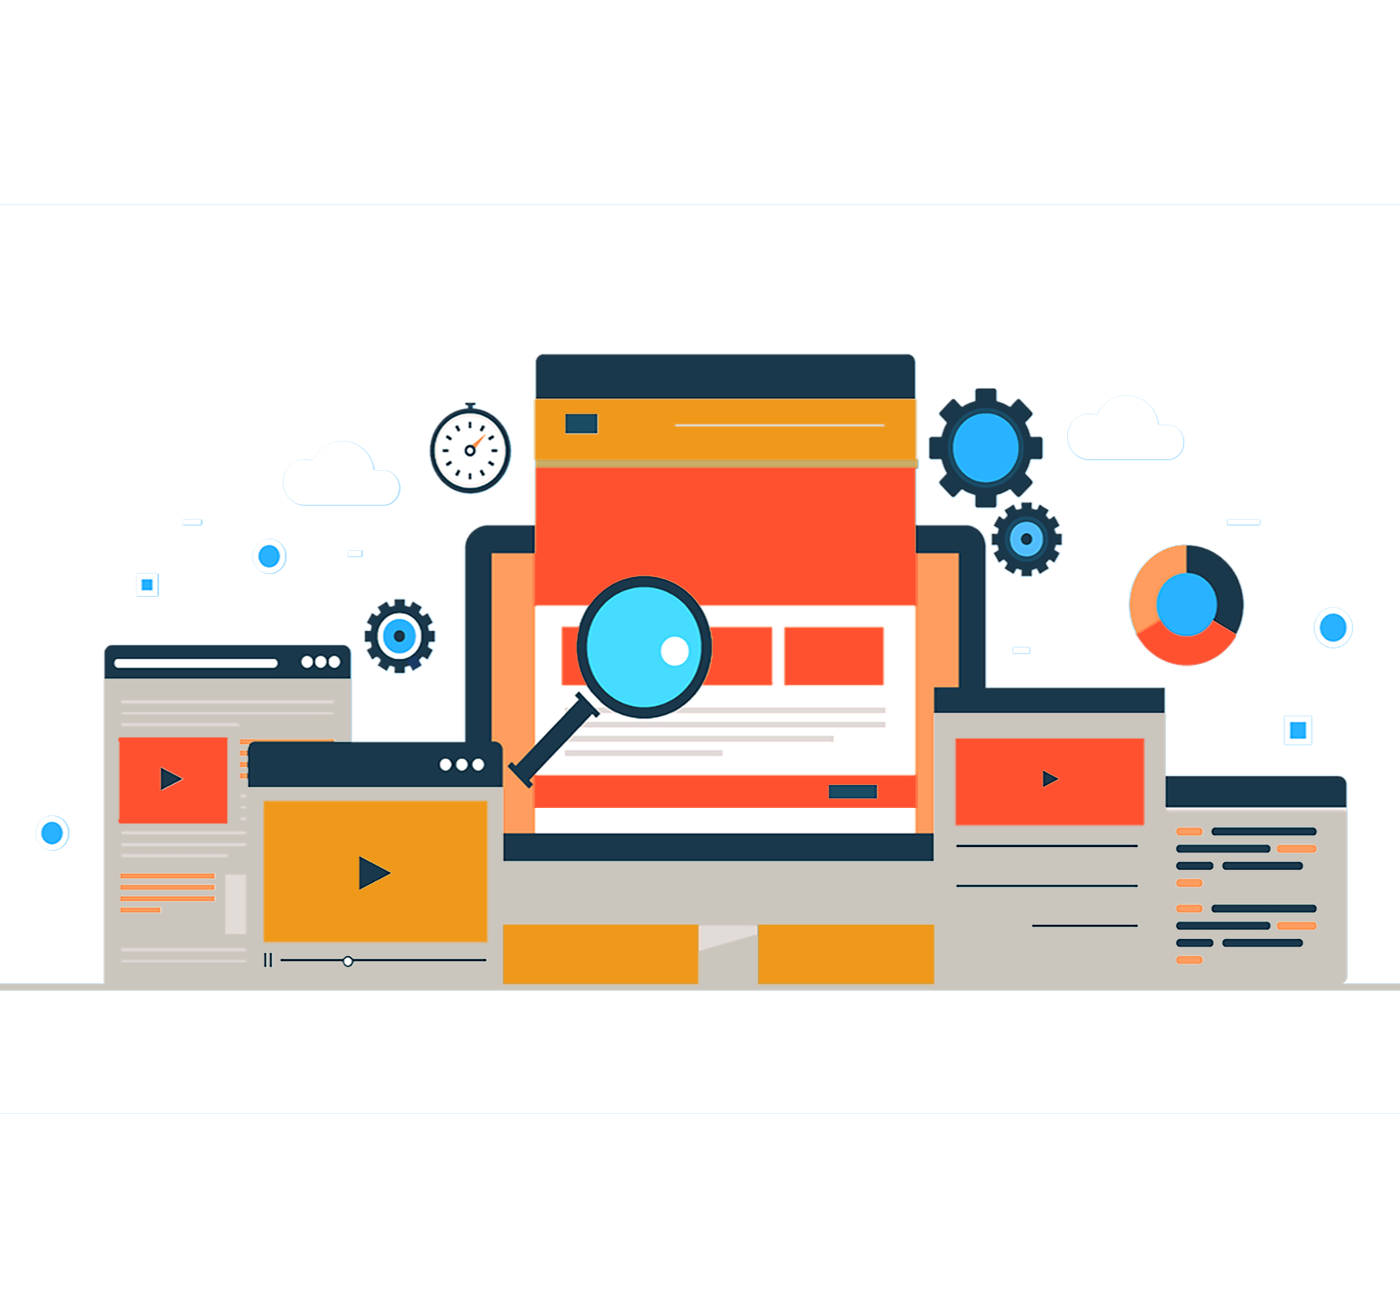 UI/ UX Design services at low cost